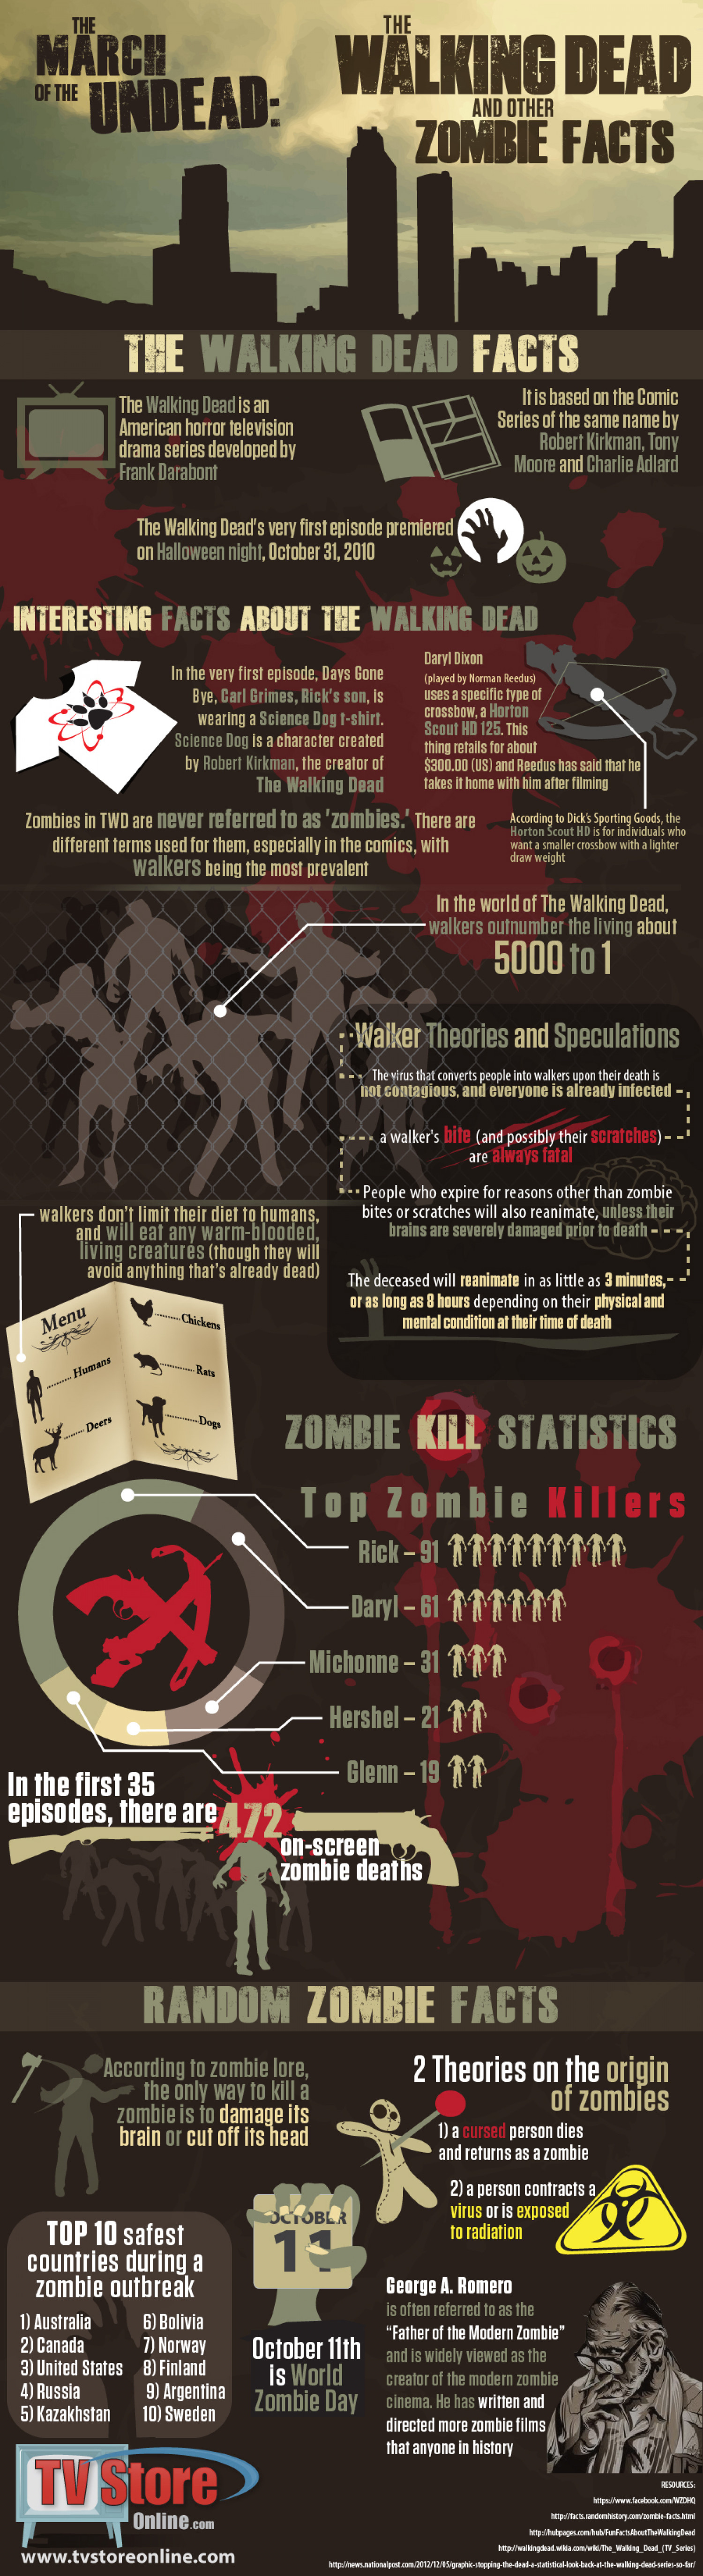 The March of the Undead: The Walking Dead and other Zombie Facts Infographic